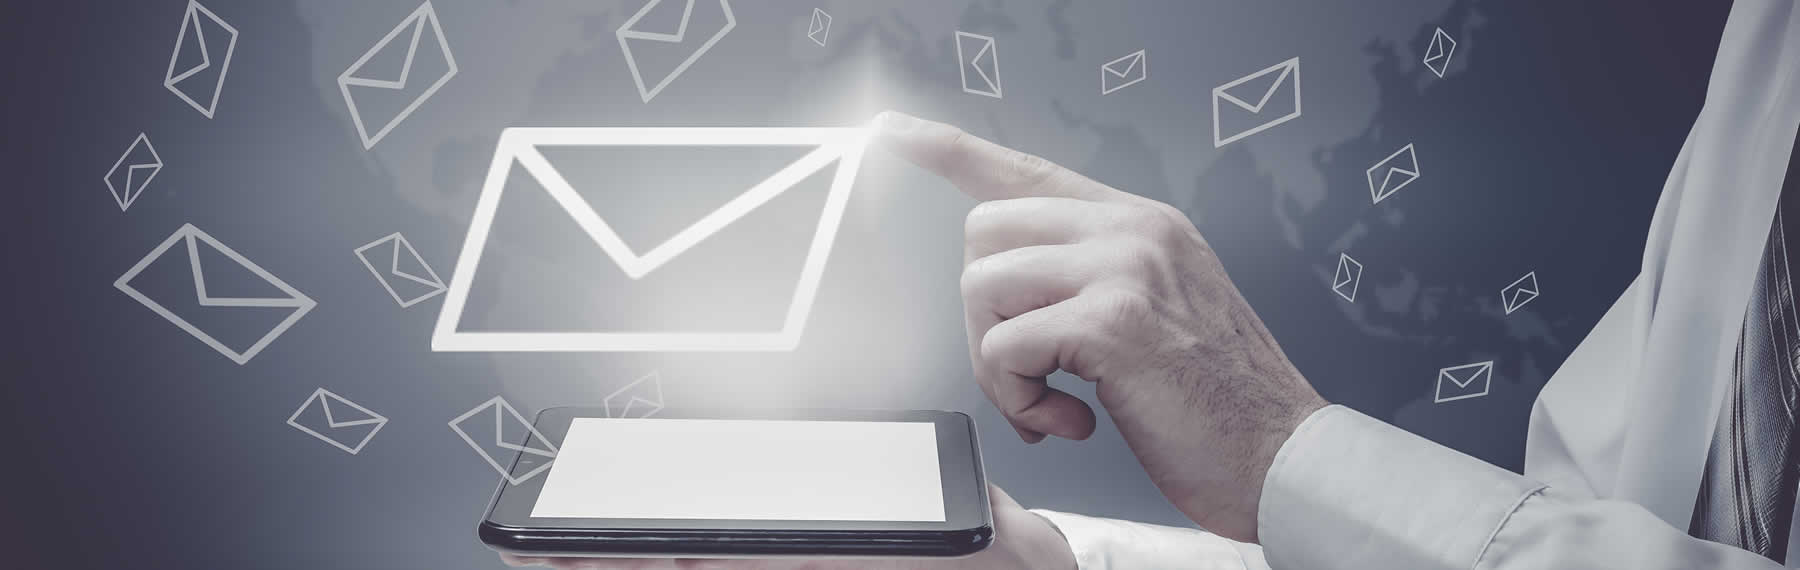 Get email marketing system help from Simple Website Creations.